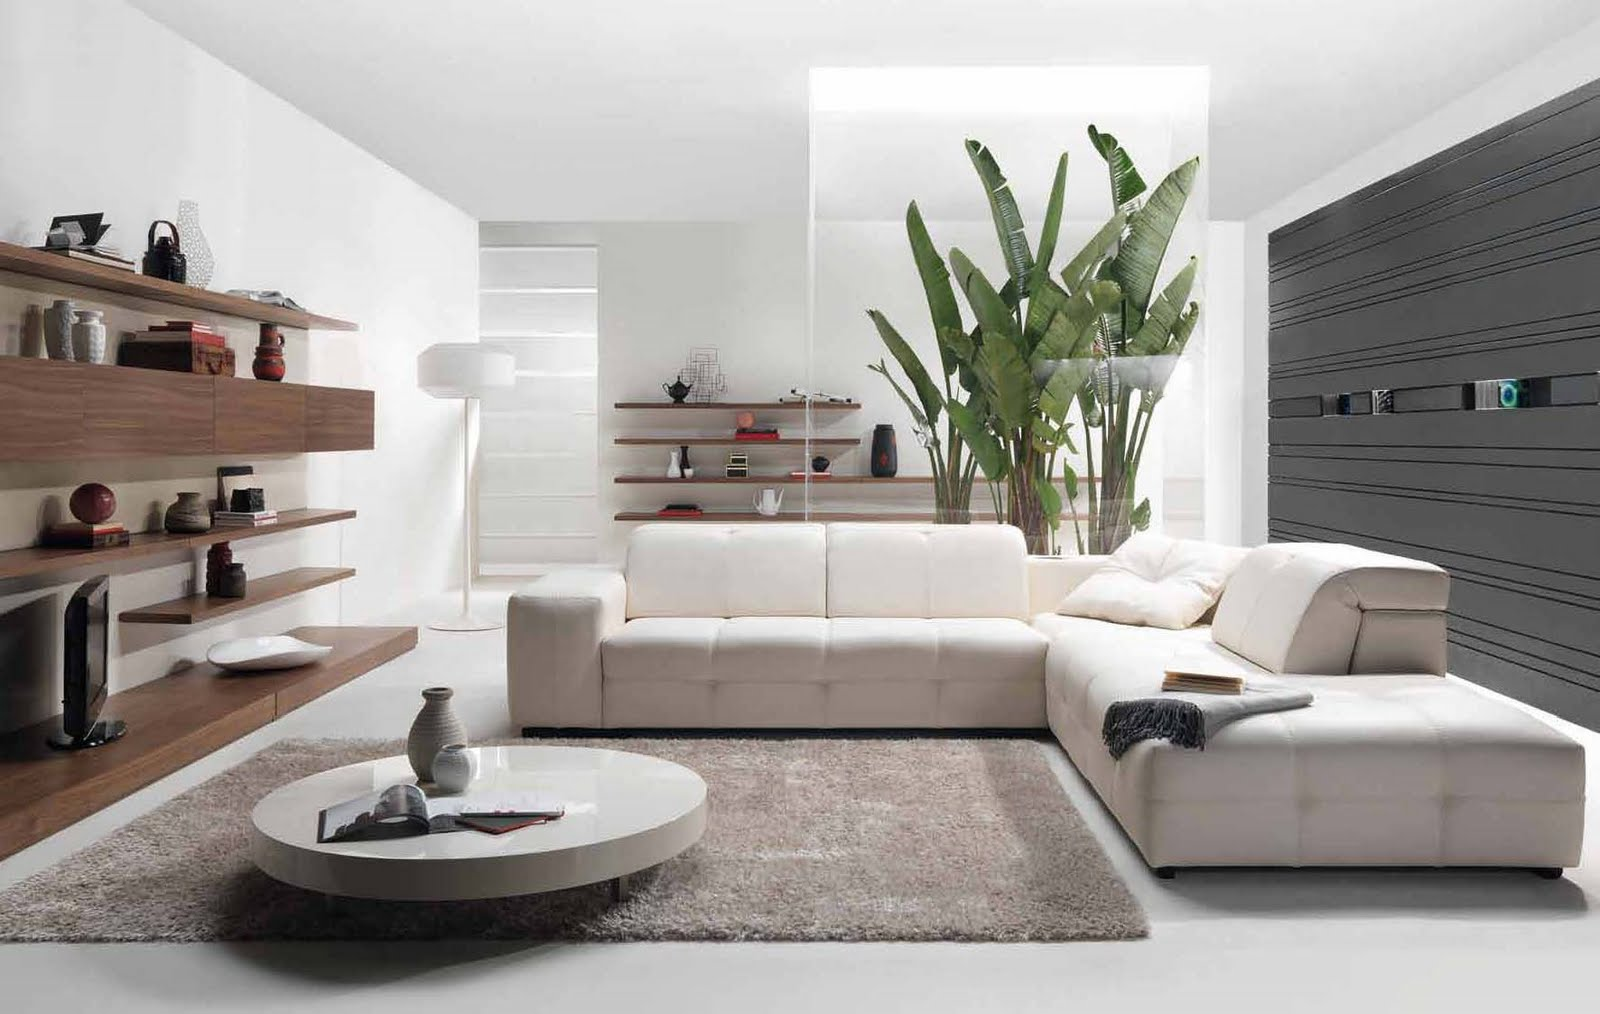 Modern home interior furniture designs diy ideas living room ideas Living room interior designs images